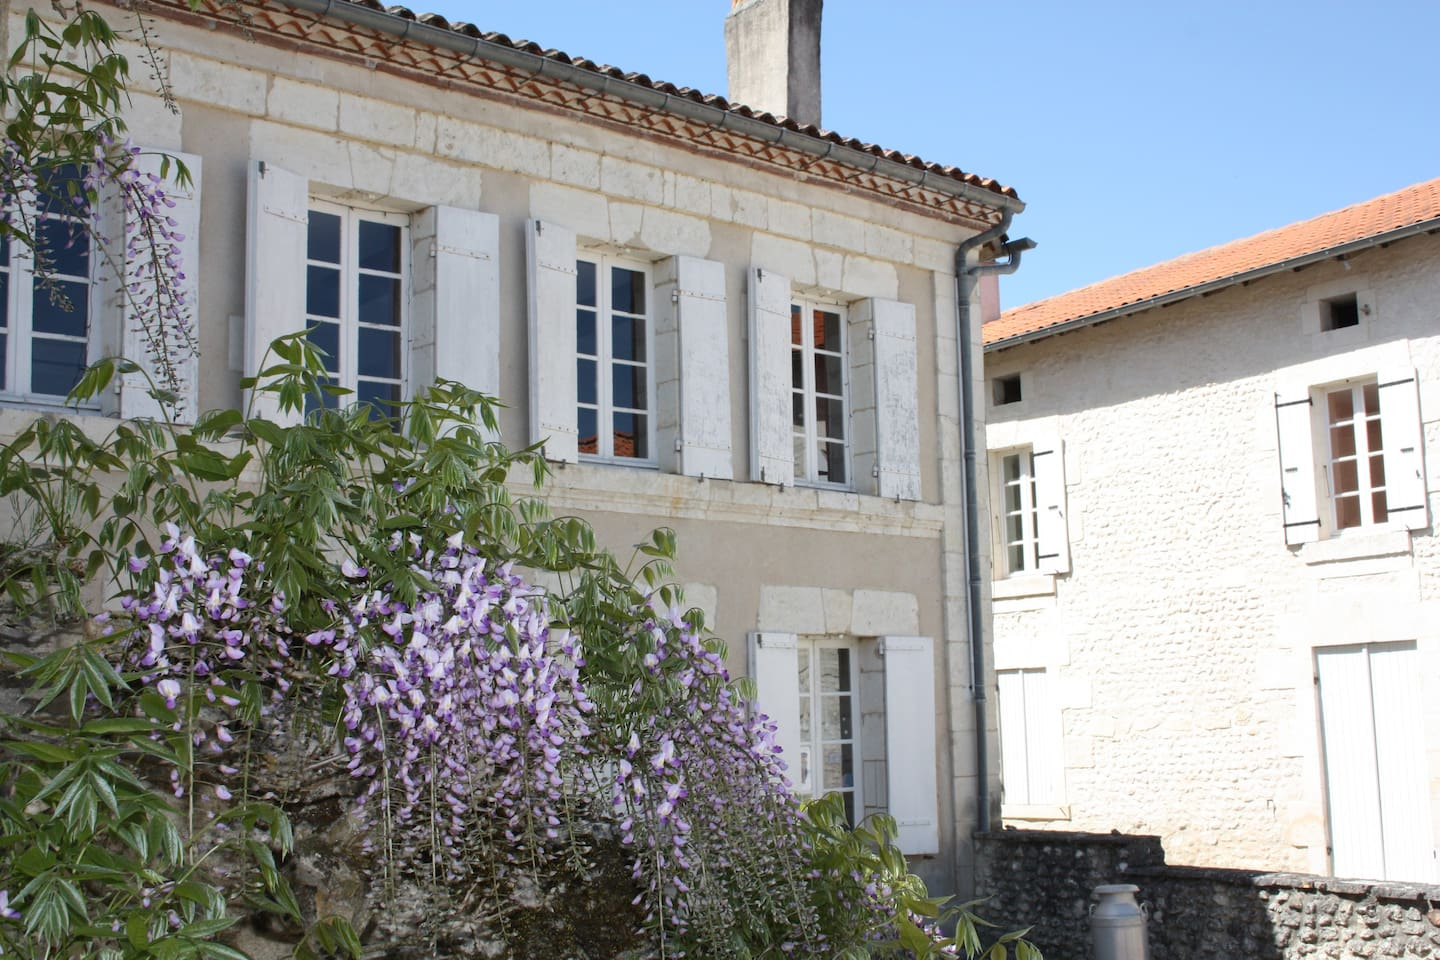 The School House - Saint-Romain